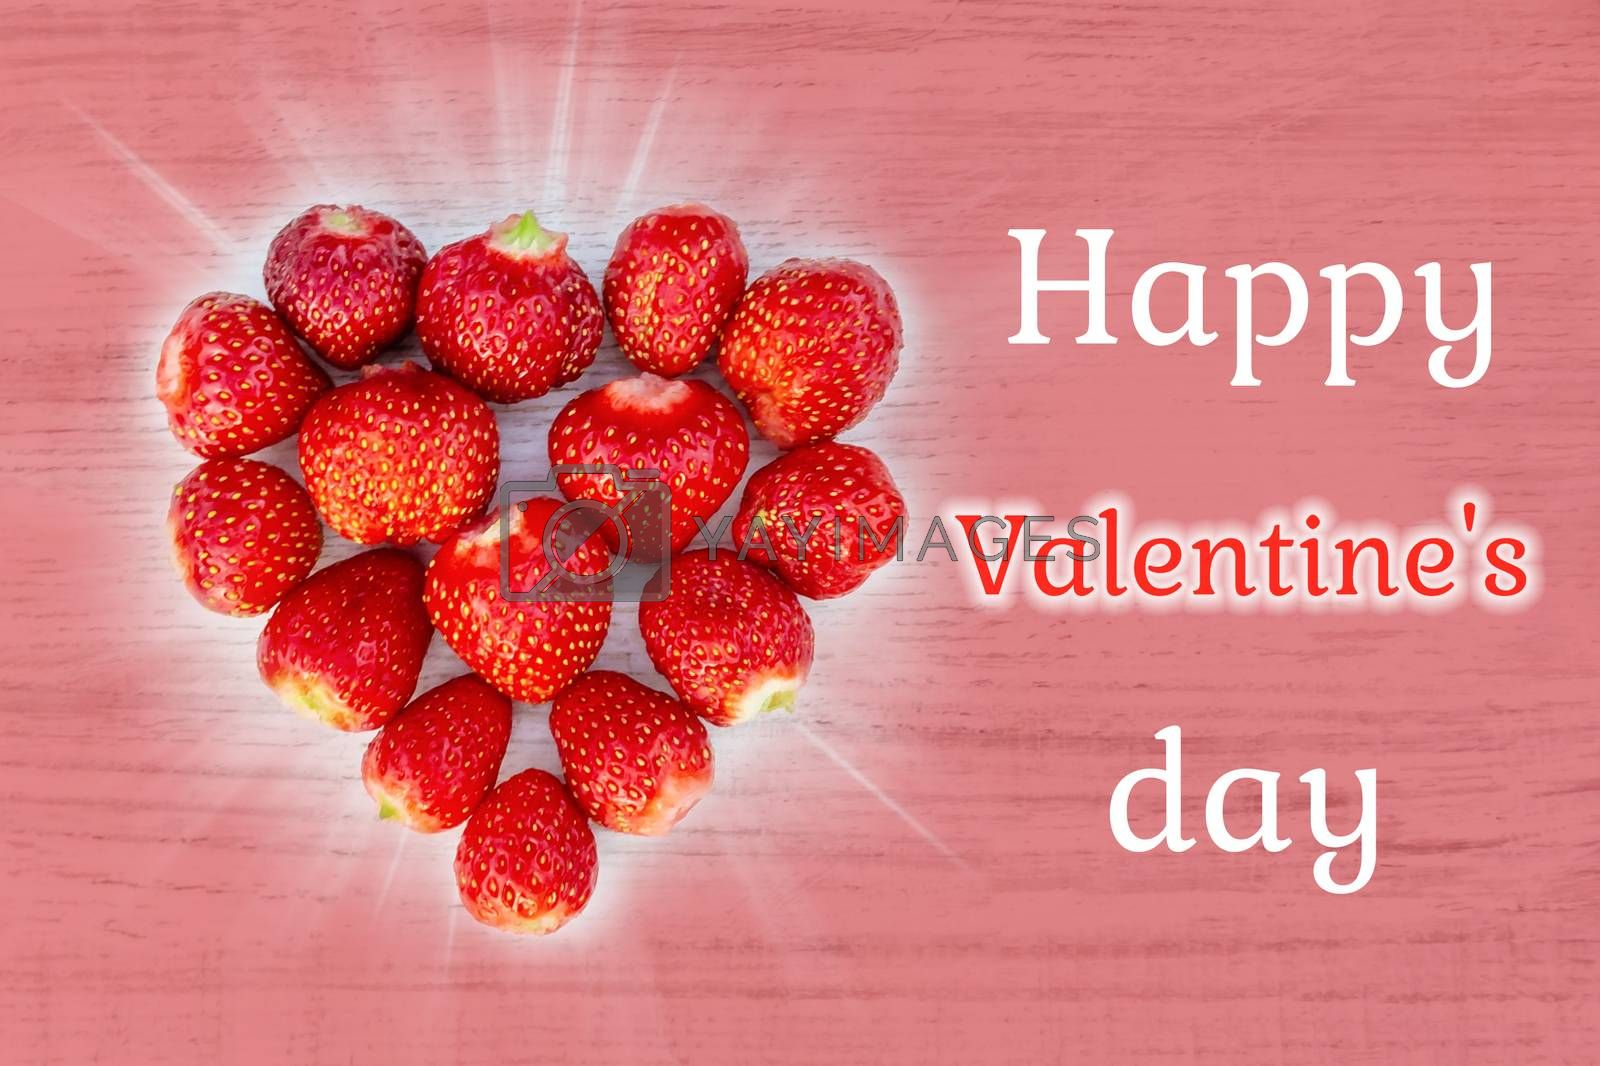 Beautiful card with a greeting on Valentine's Day - heart strawberries on a pink background textures and the words Happy Valentine's Day by galsand